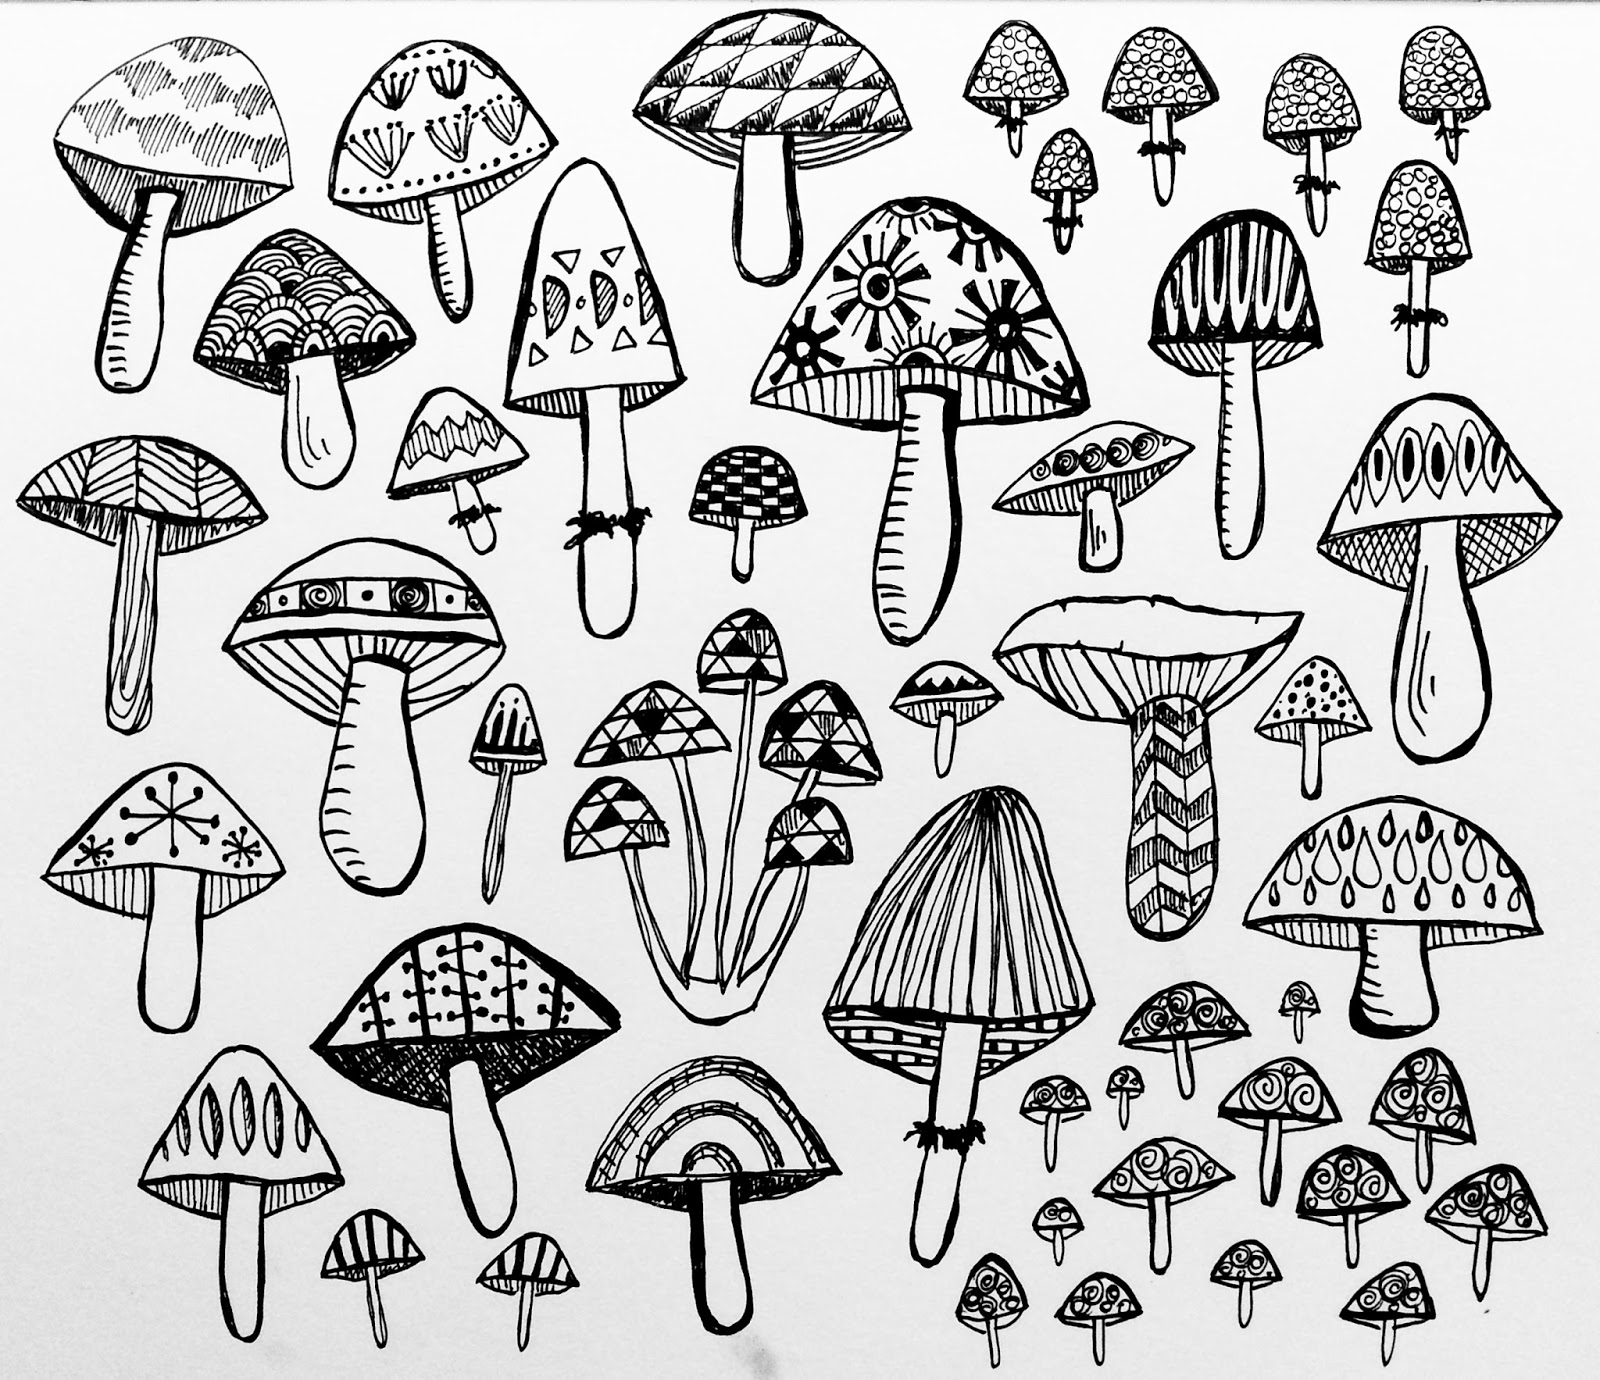 Uncategorized Mushroom Drawing the rare pear studio blog how to draw a mushroom because i so here you are little video or two of me drawing some mushrooms nothing too fancy just few shapes and bit shading an